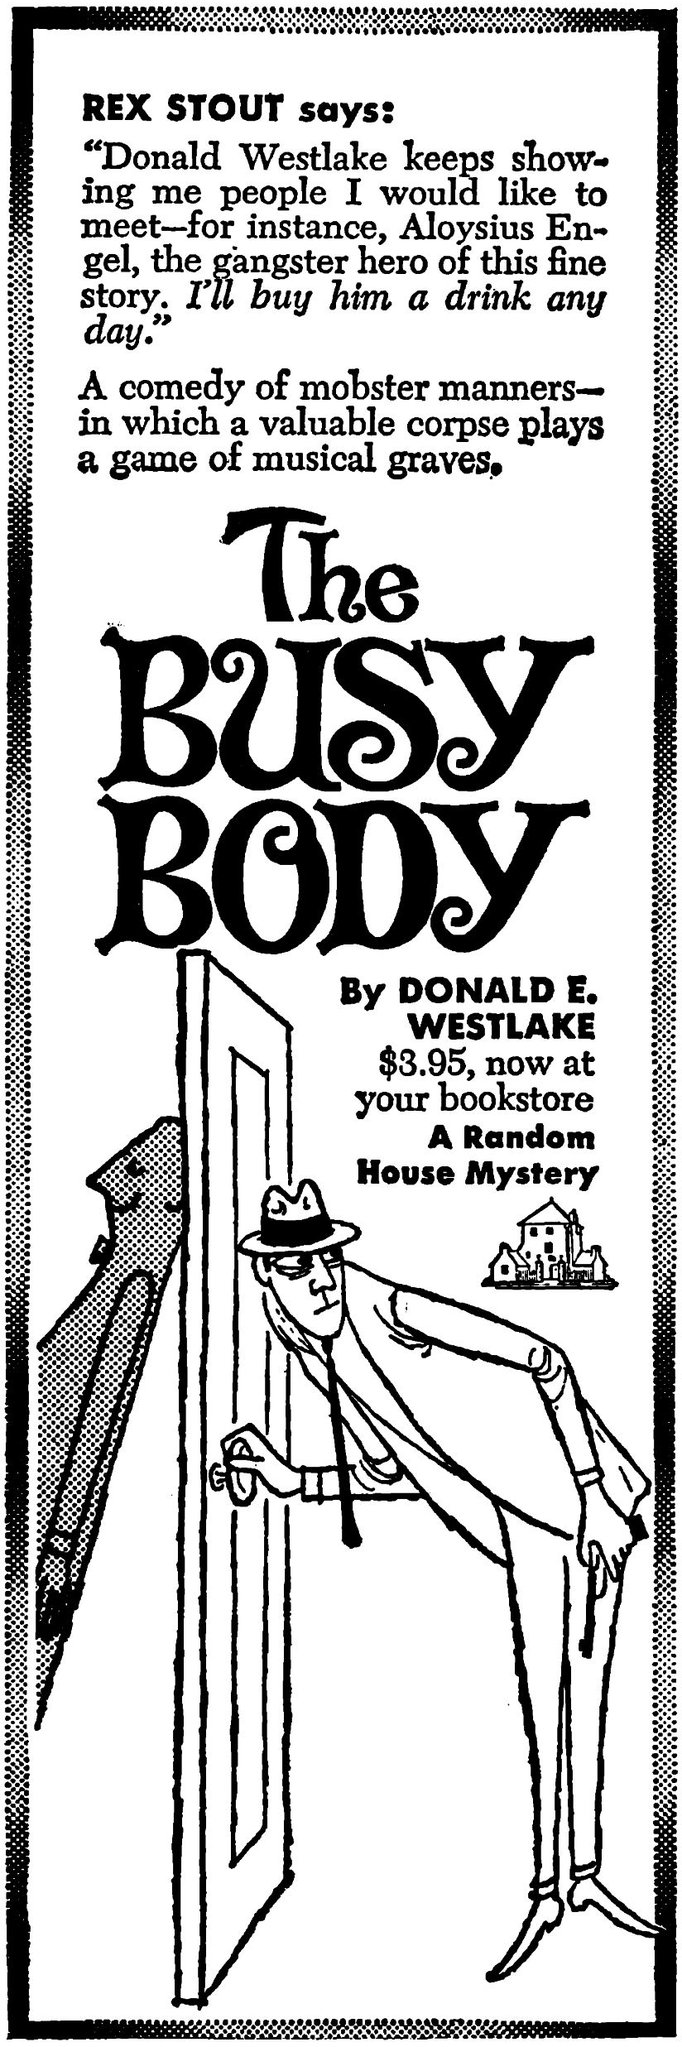 A 1966 Ad For The Busy Body